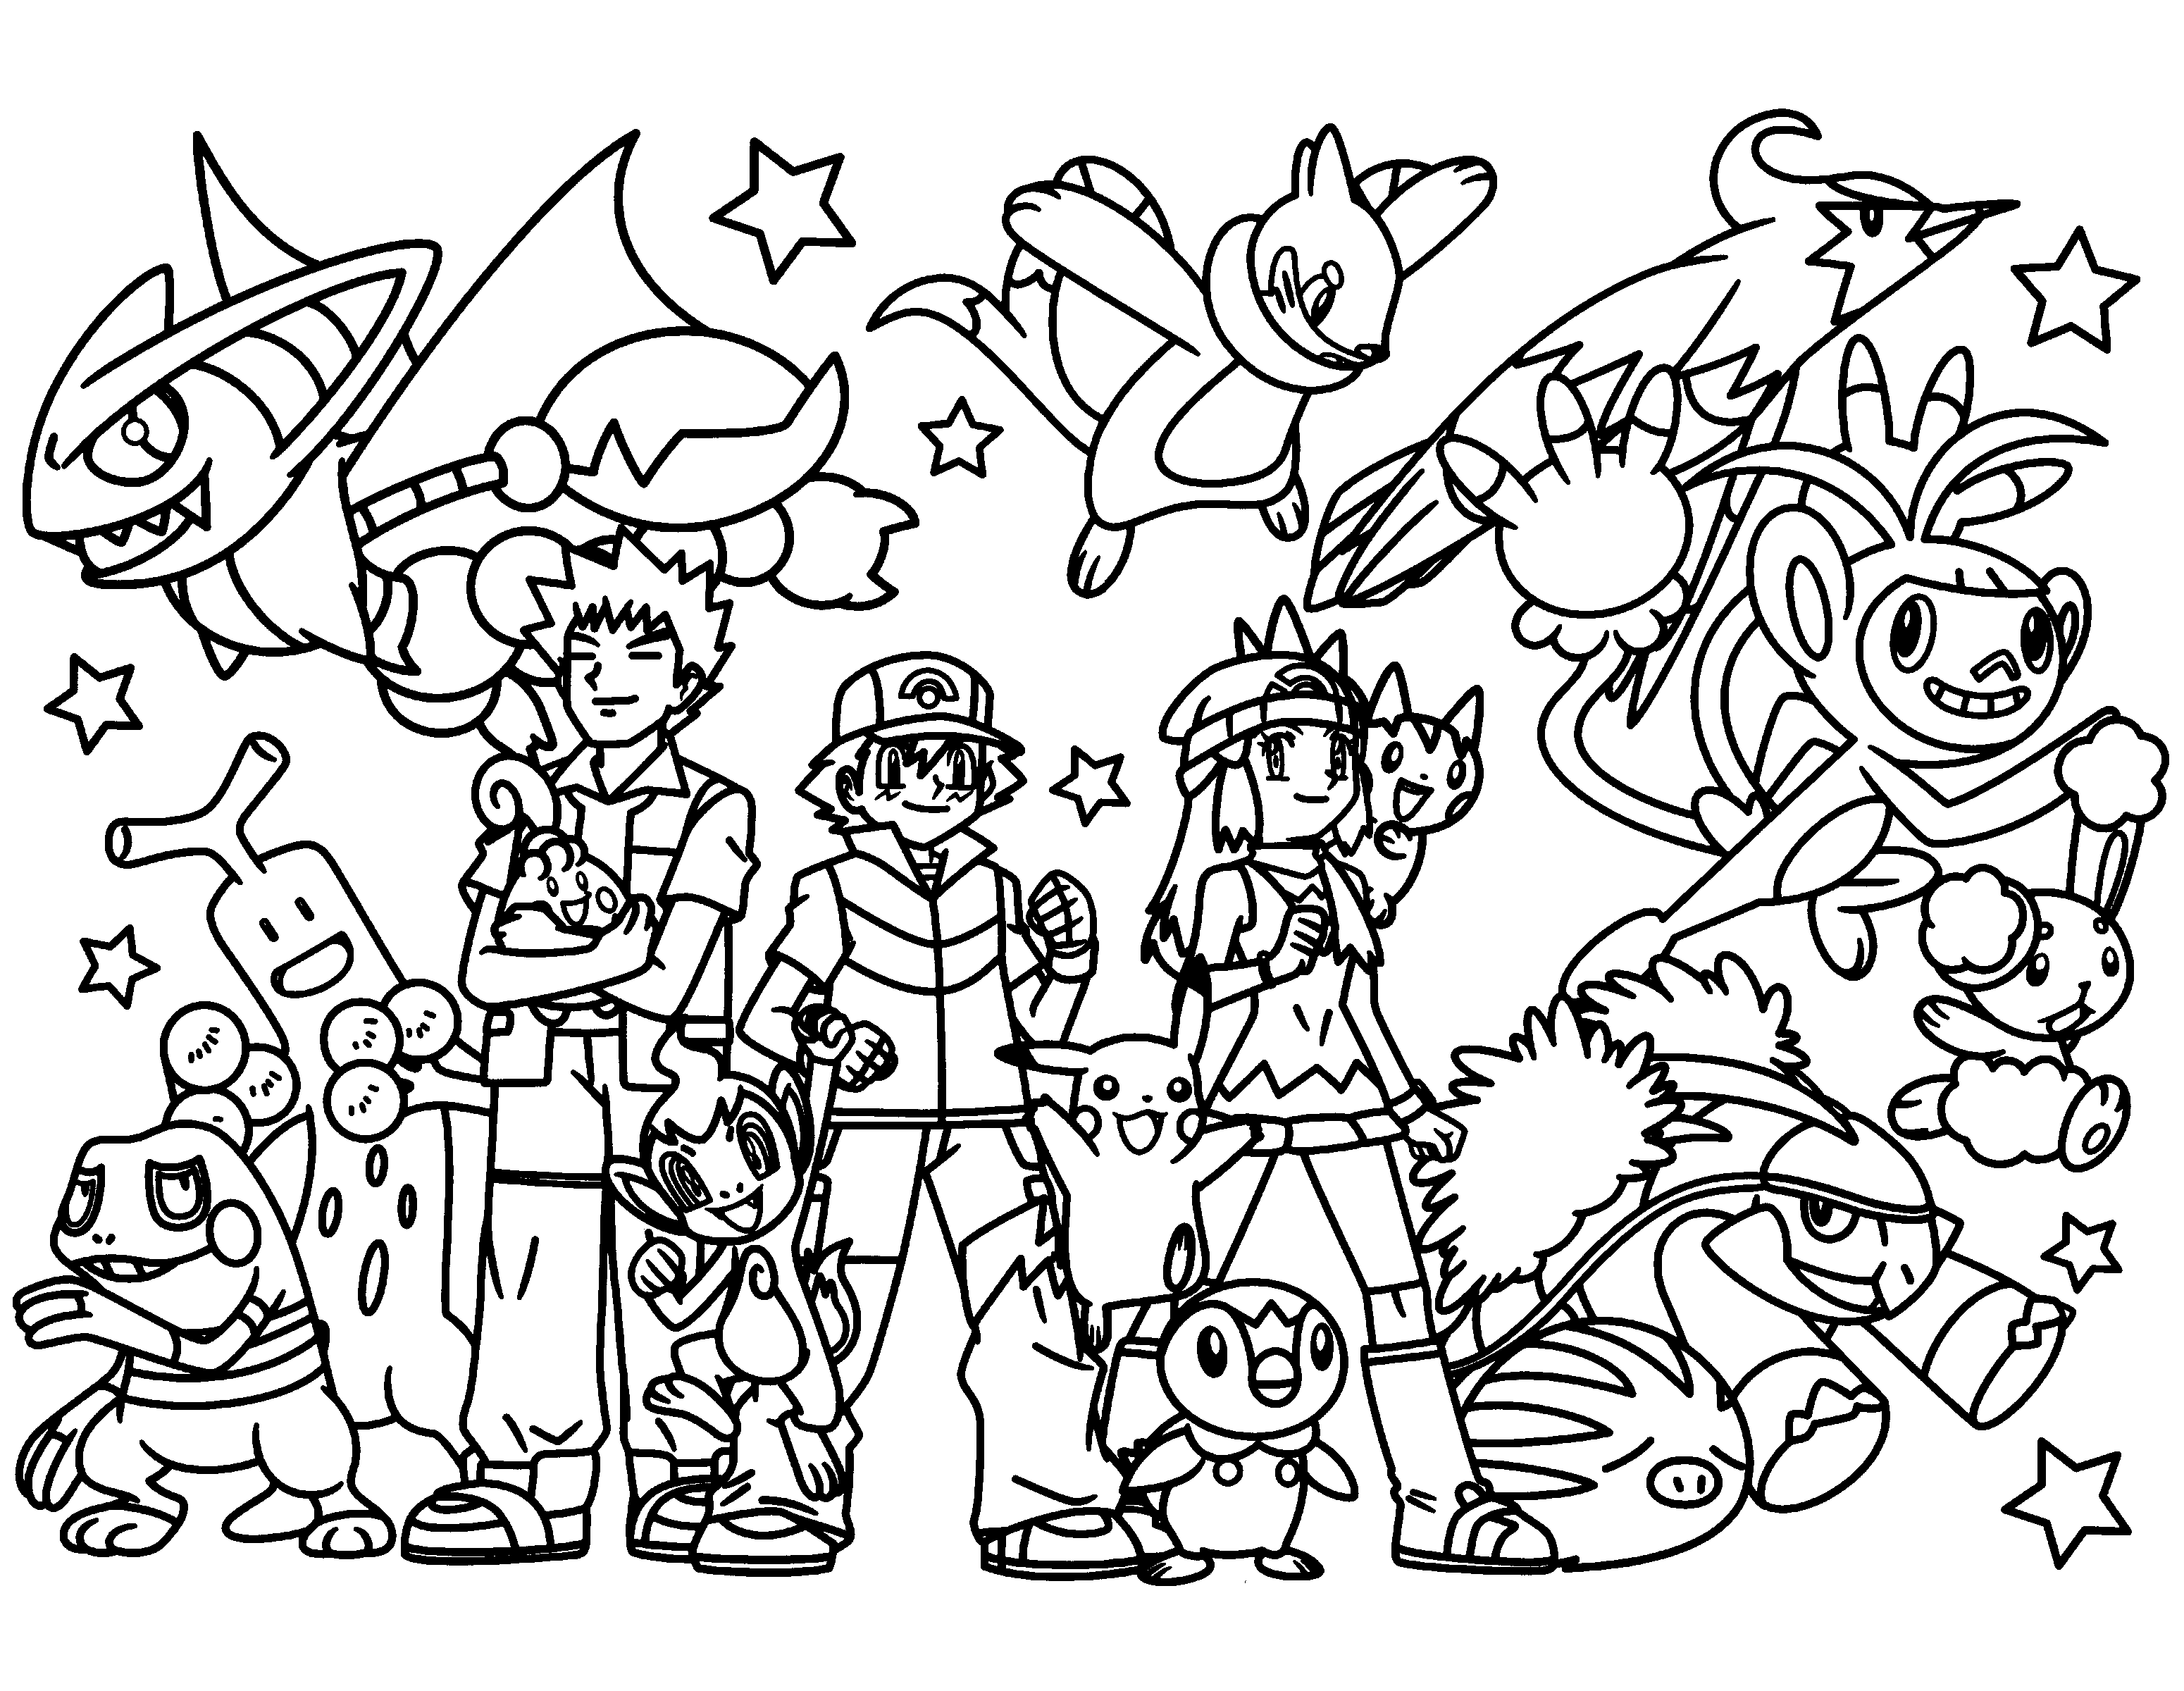 pokemon colouring pages online free top 93 free printable pokemon coloring pages online colouring online free pages pokemon